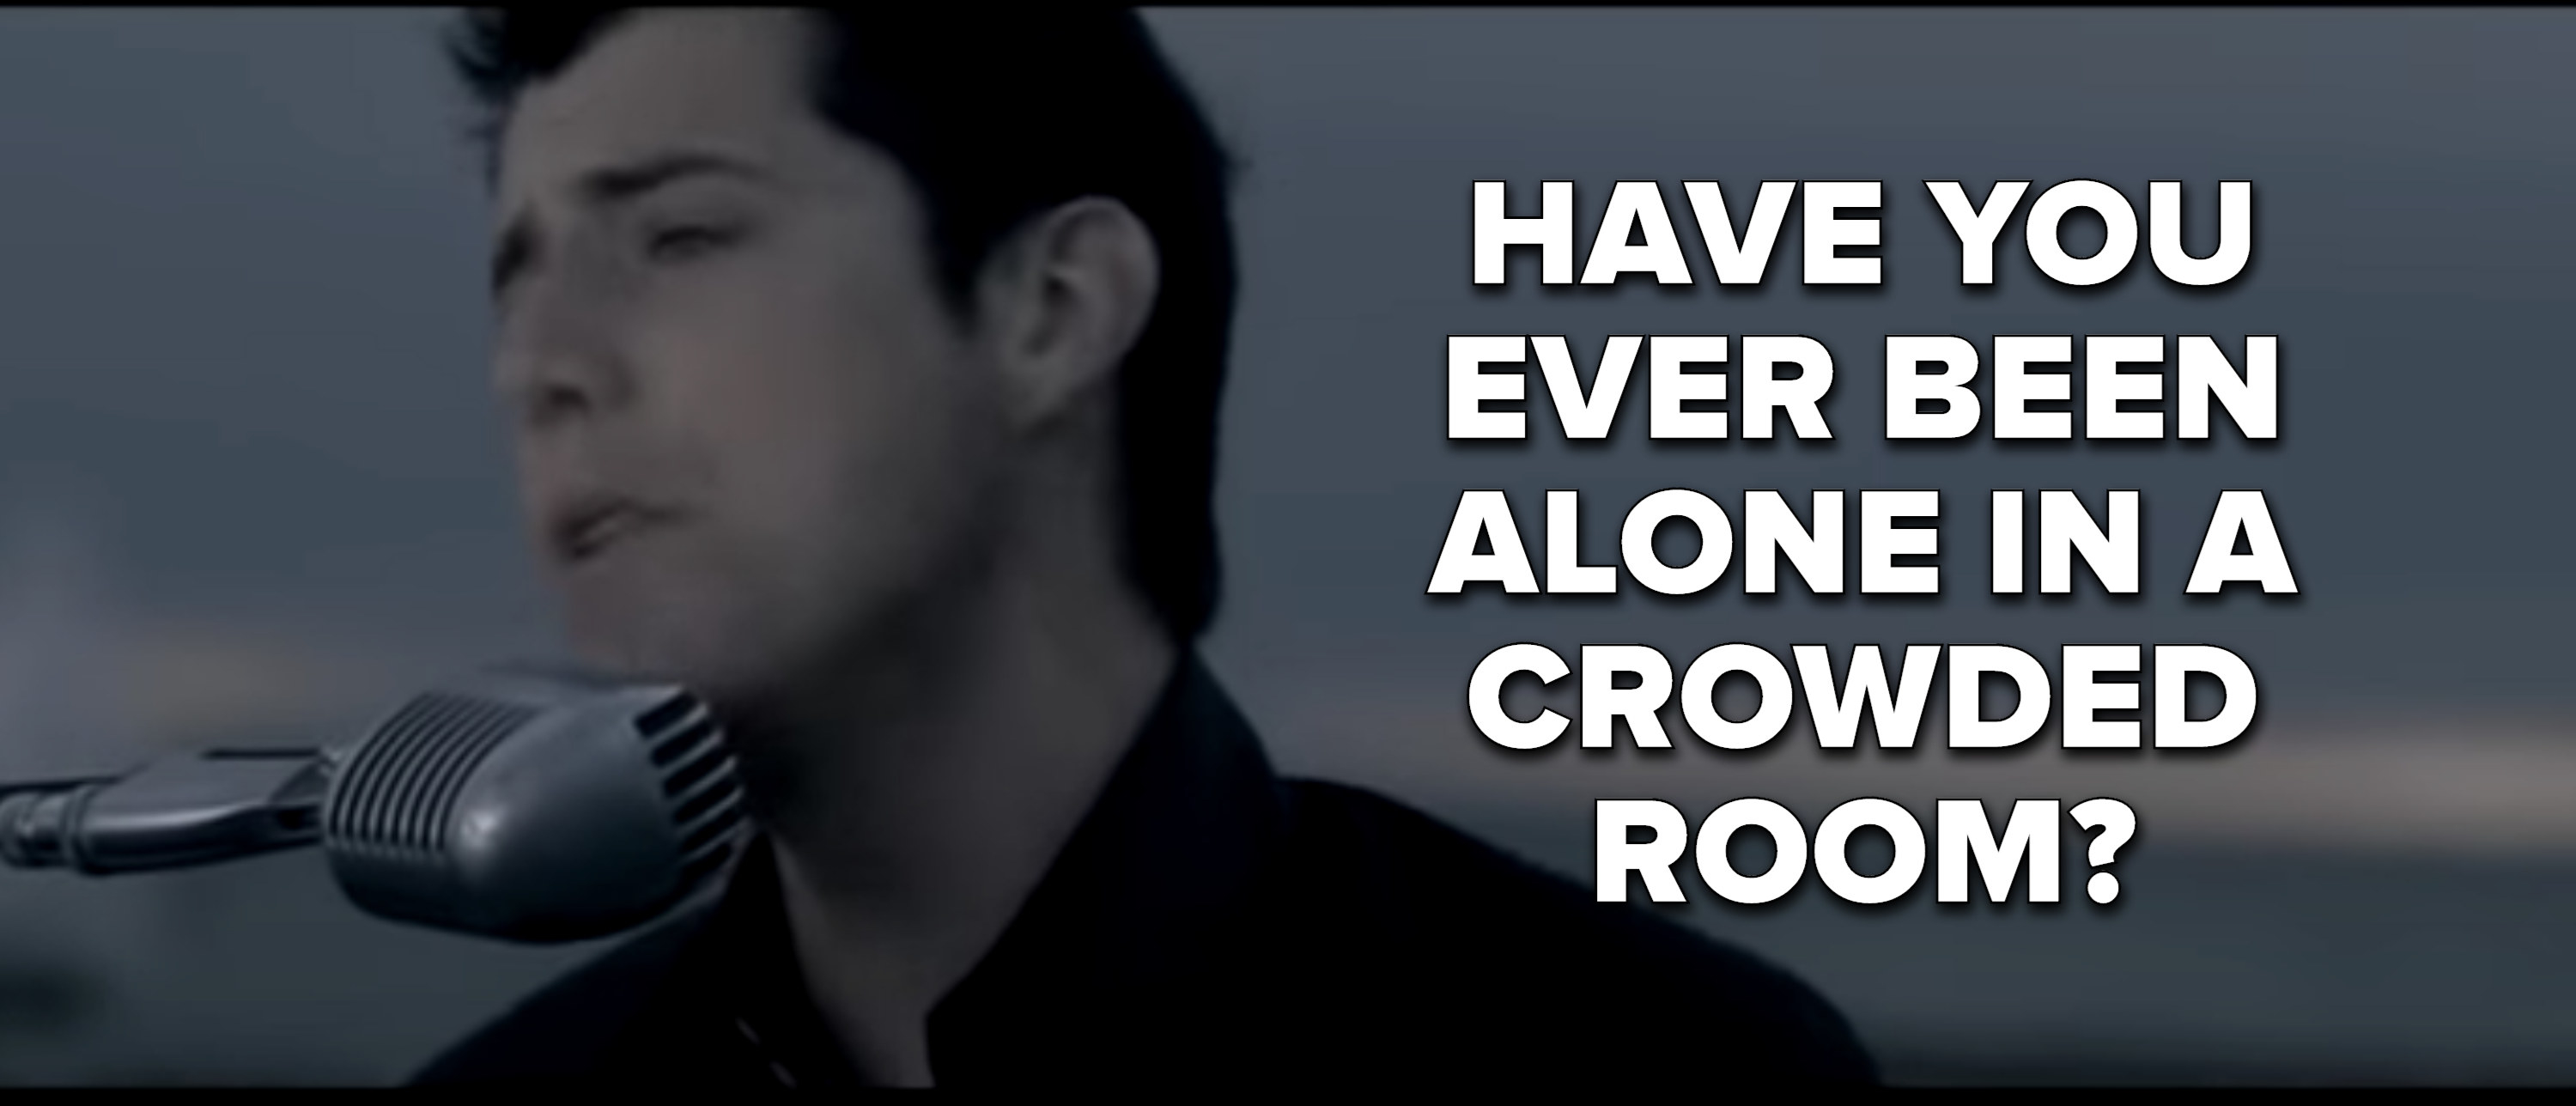 """Have you ever been alone in a crowded room?"""